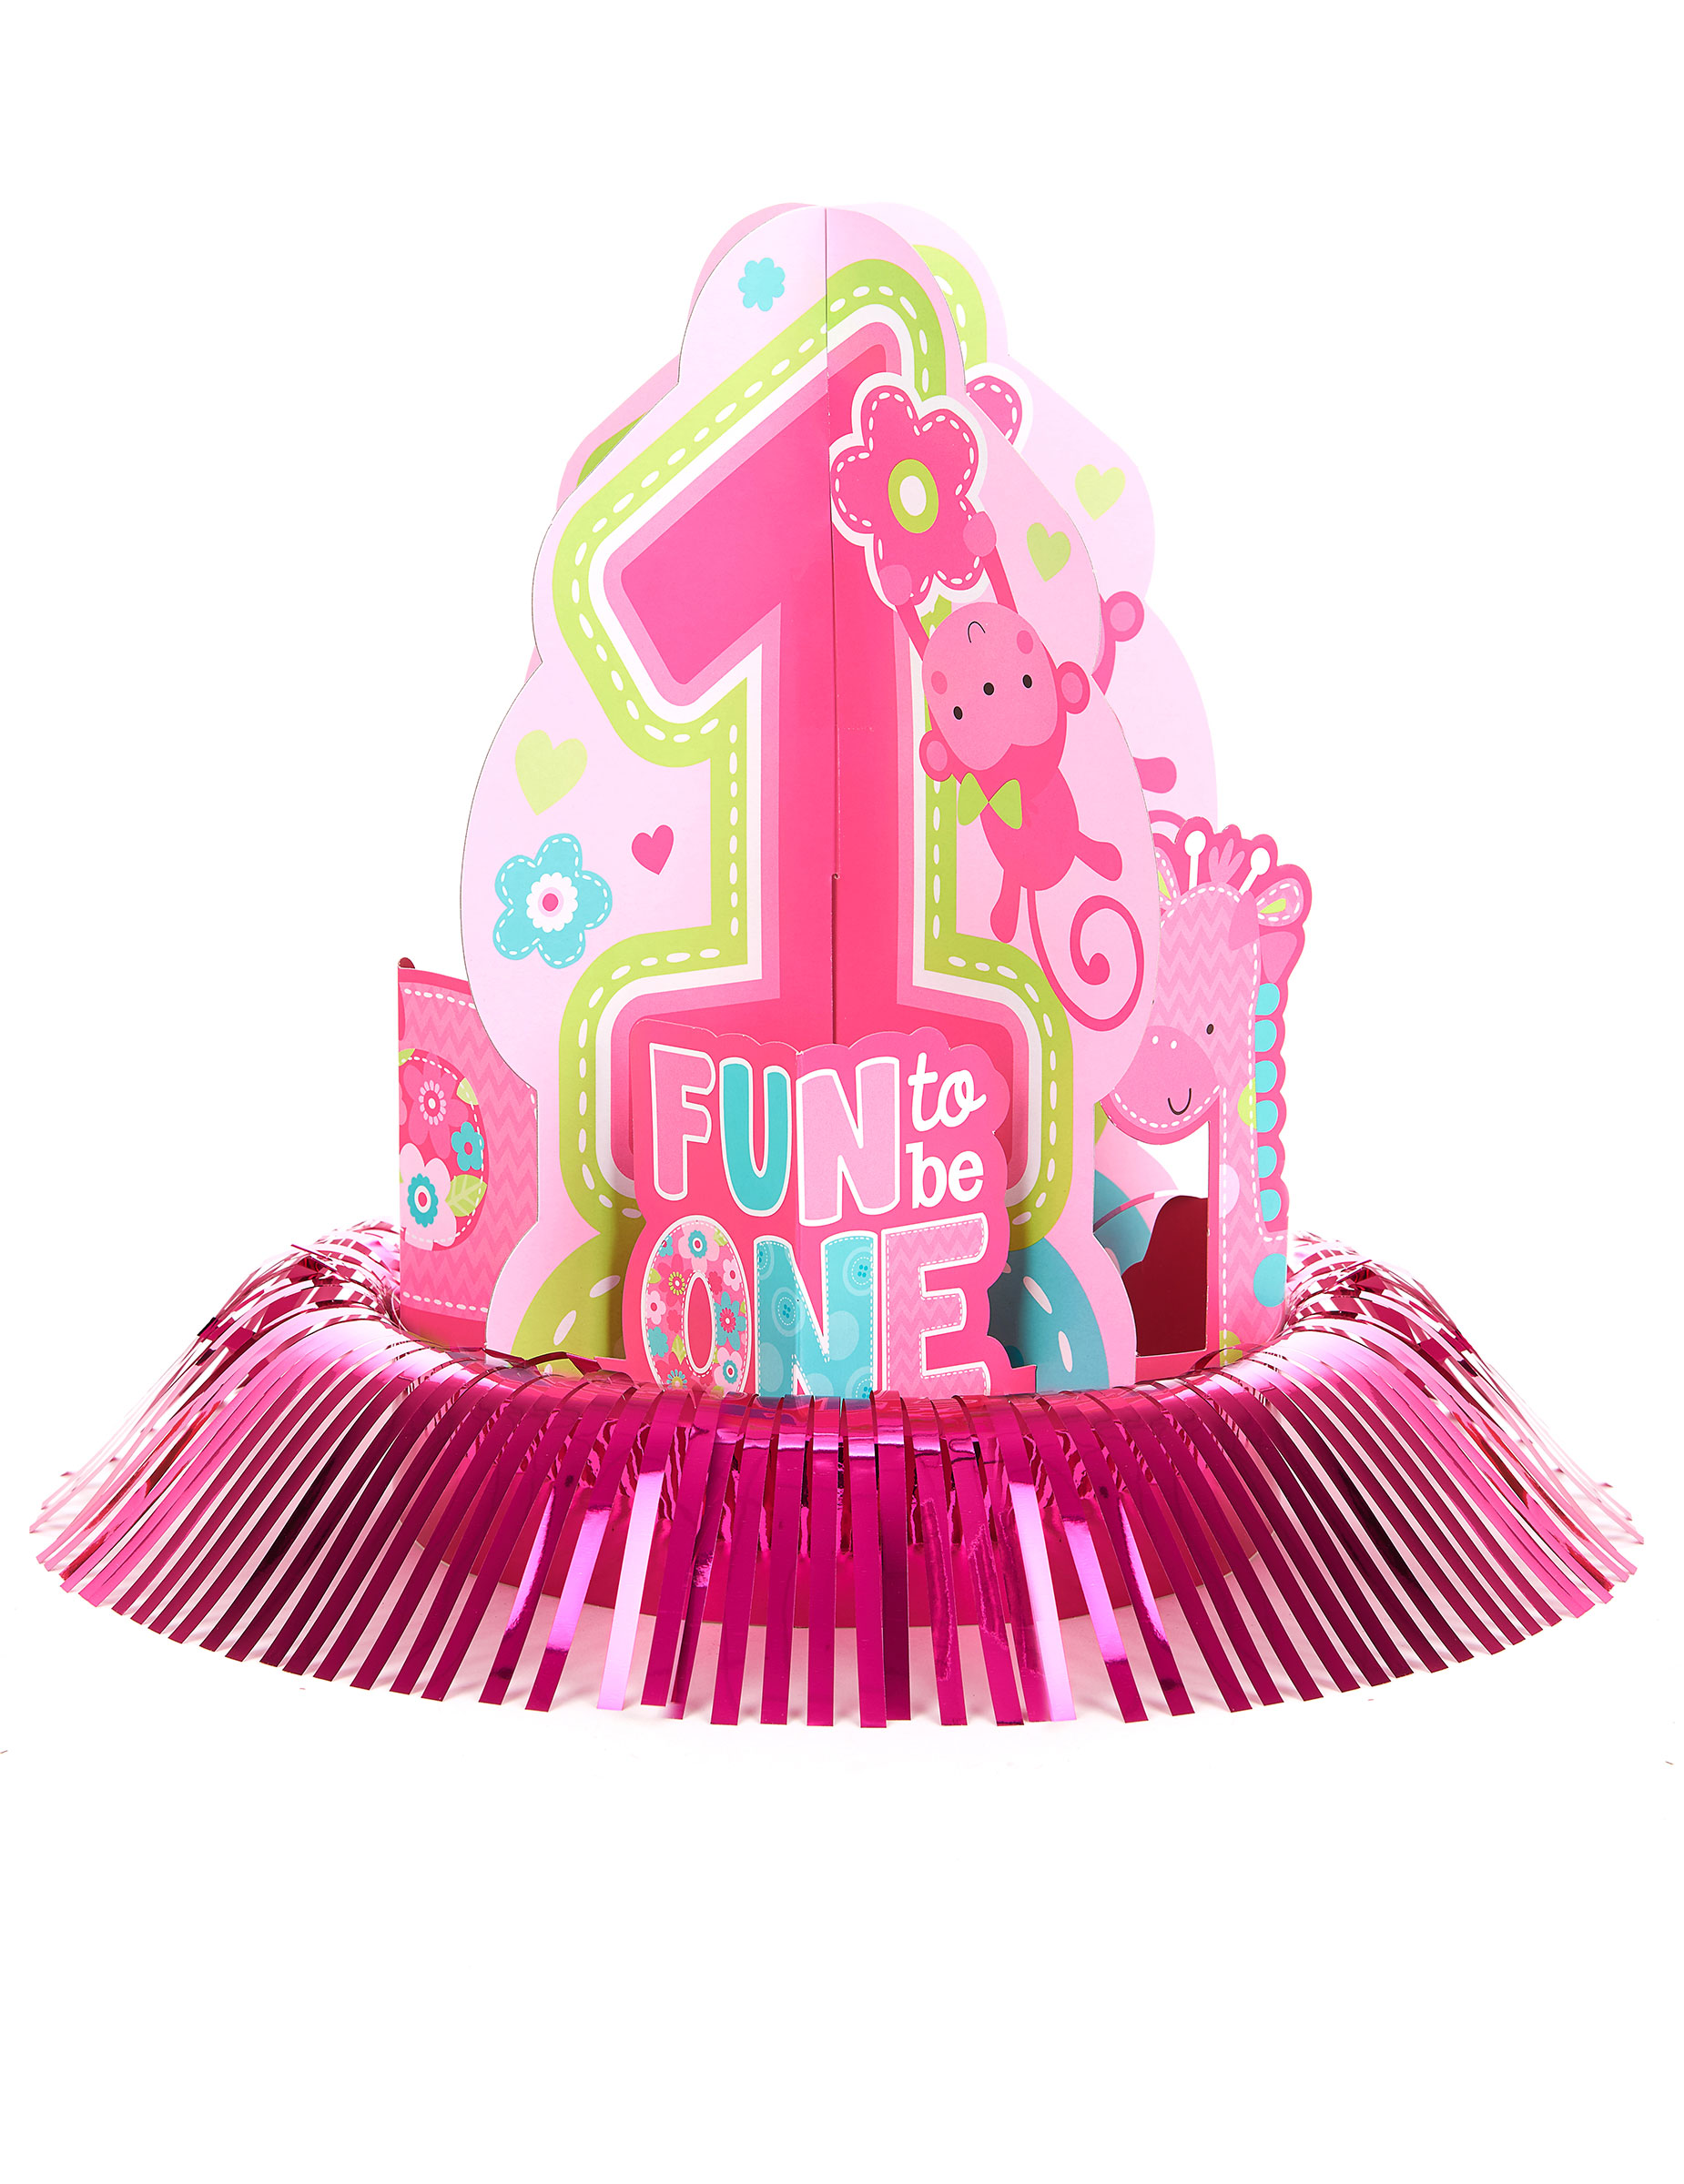 Kit De D Coration Centre De Table 1 An Fille D Coration Anniversaire Et F Tes Th Me Sur